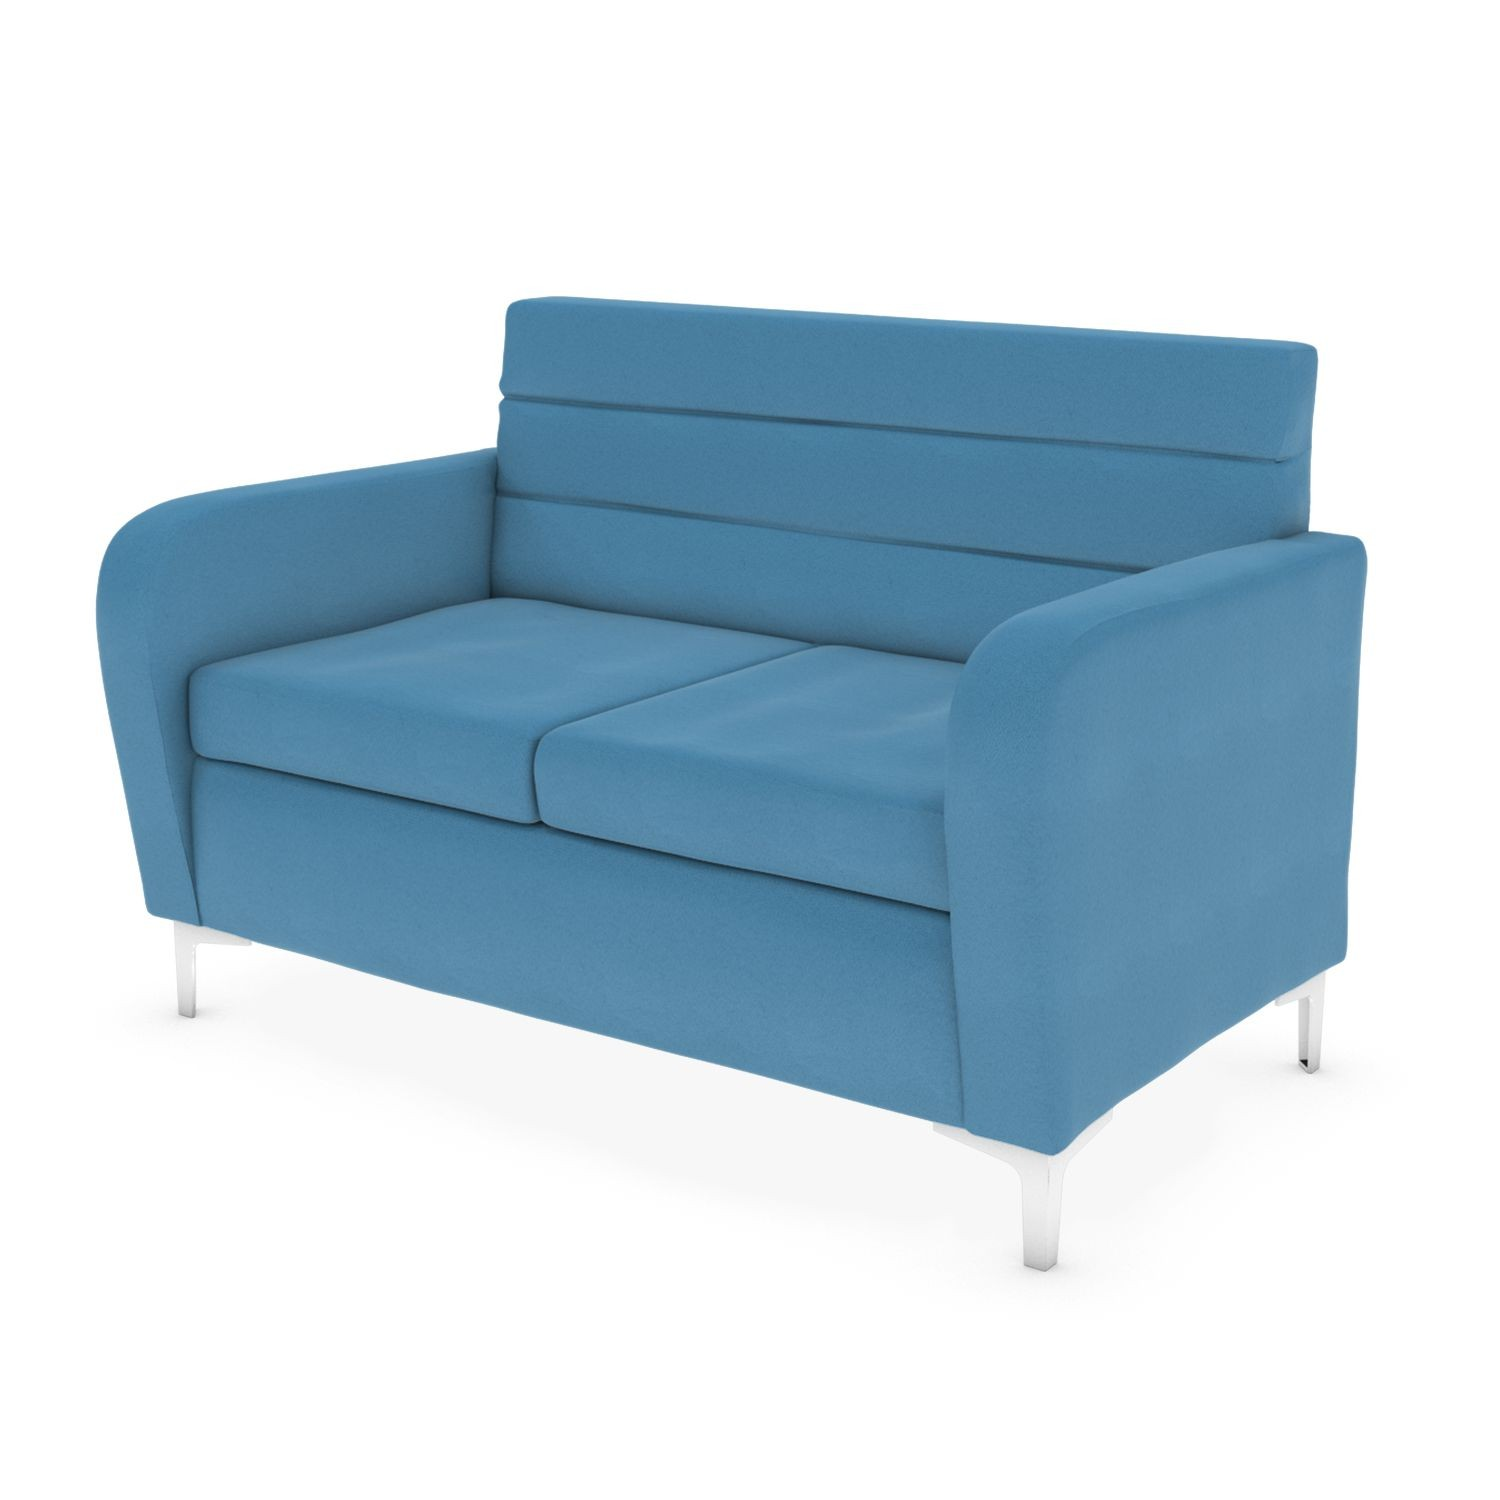 Soft Seating Cavil Sofa